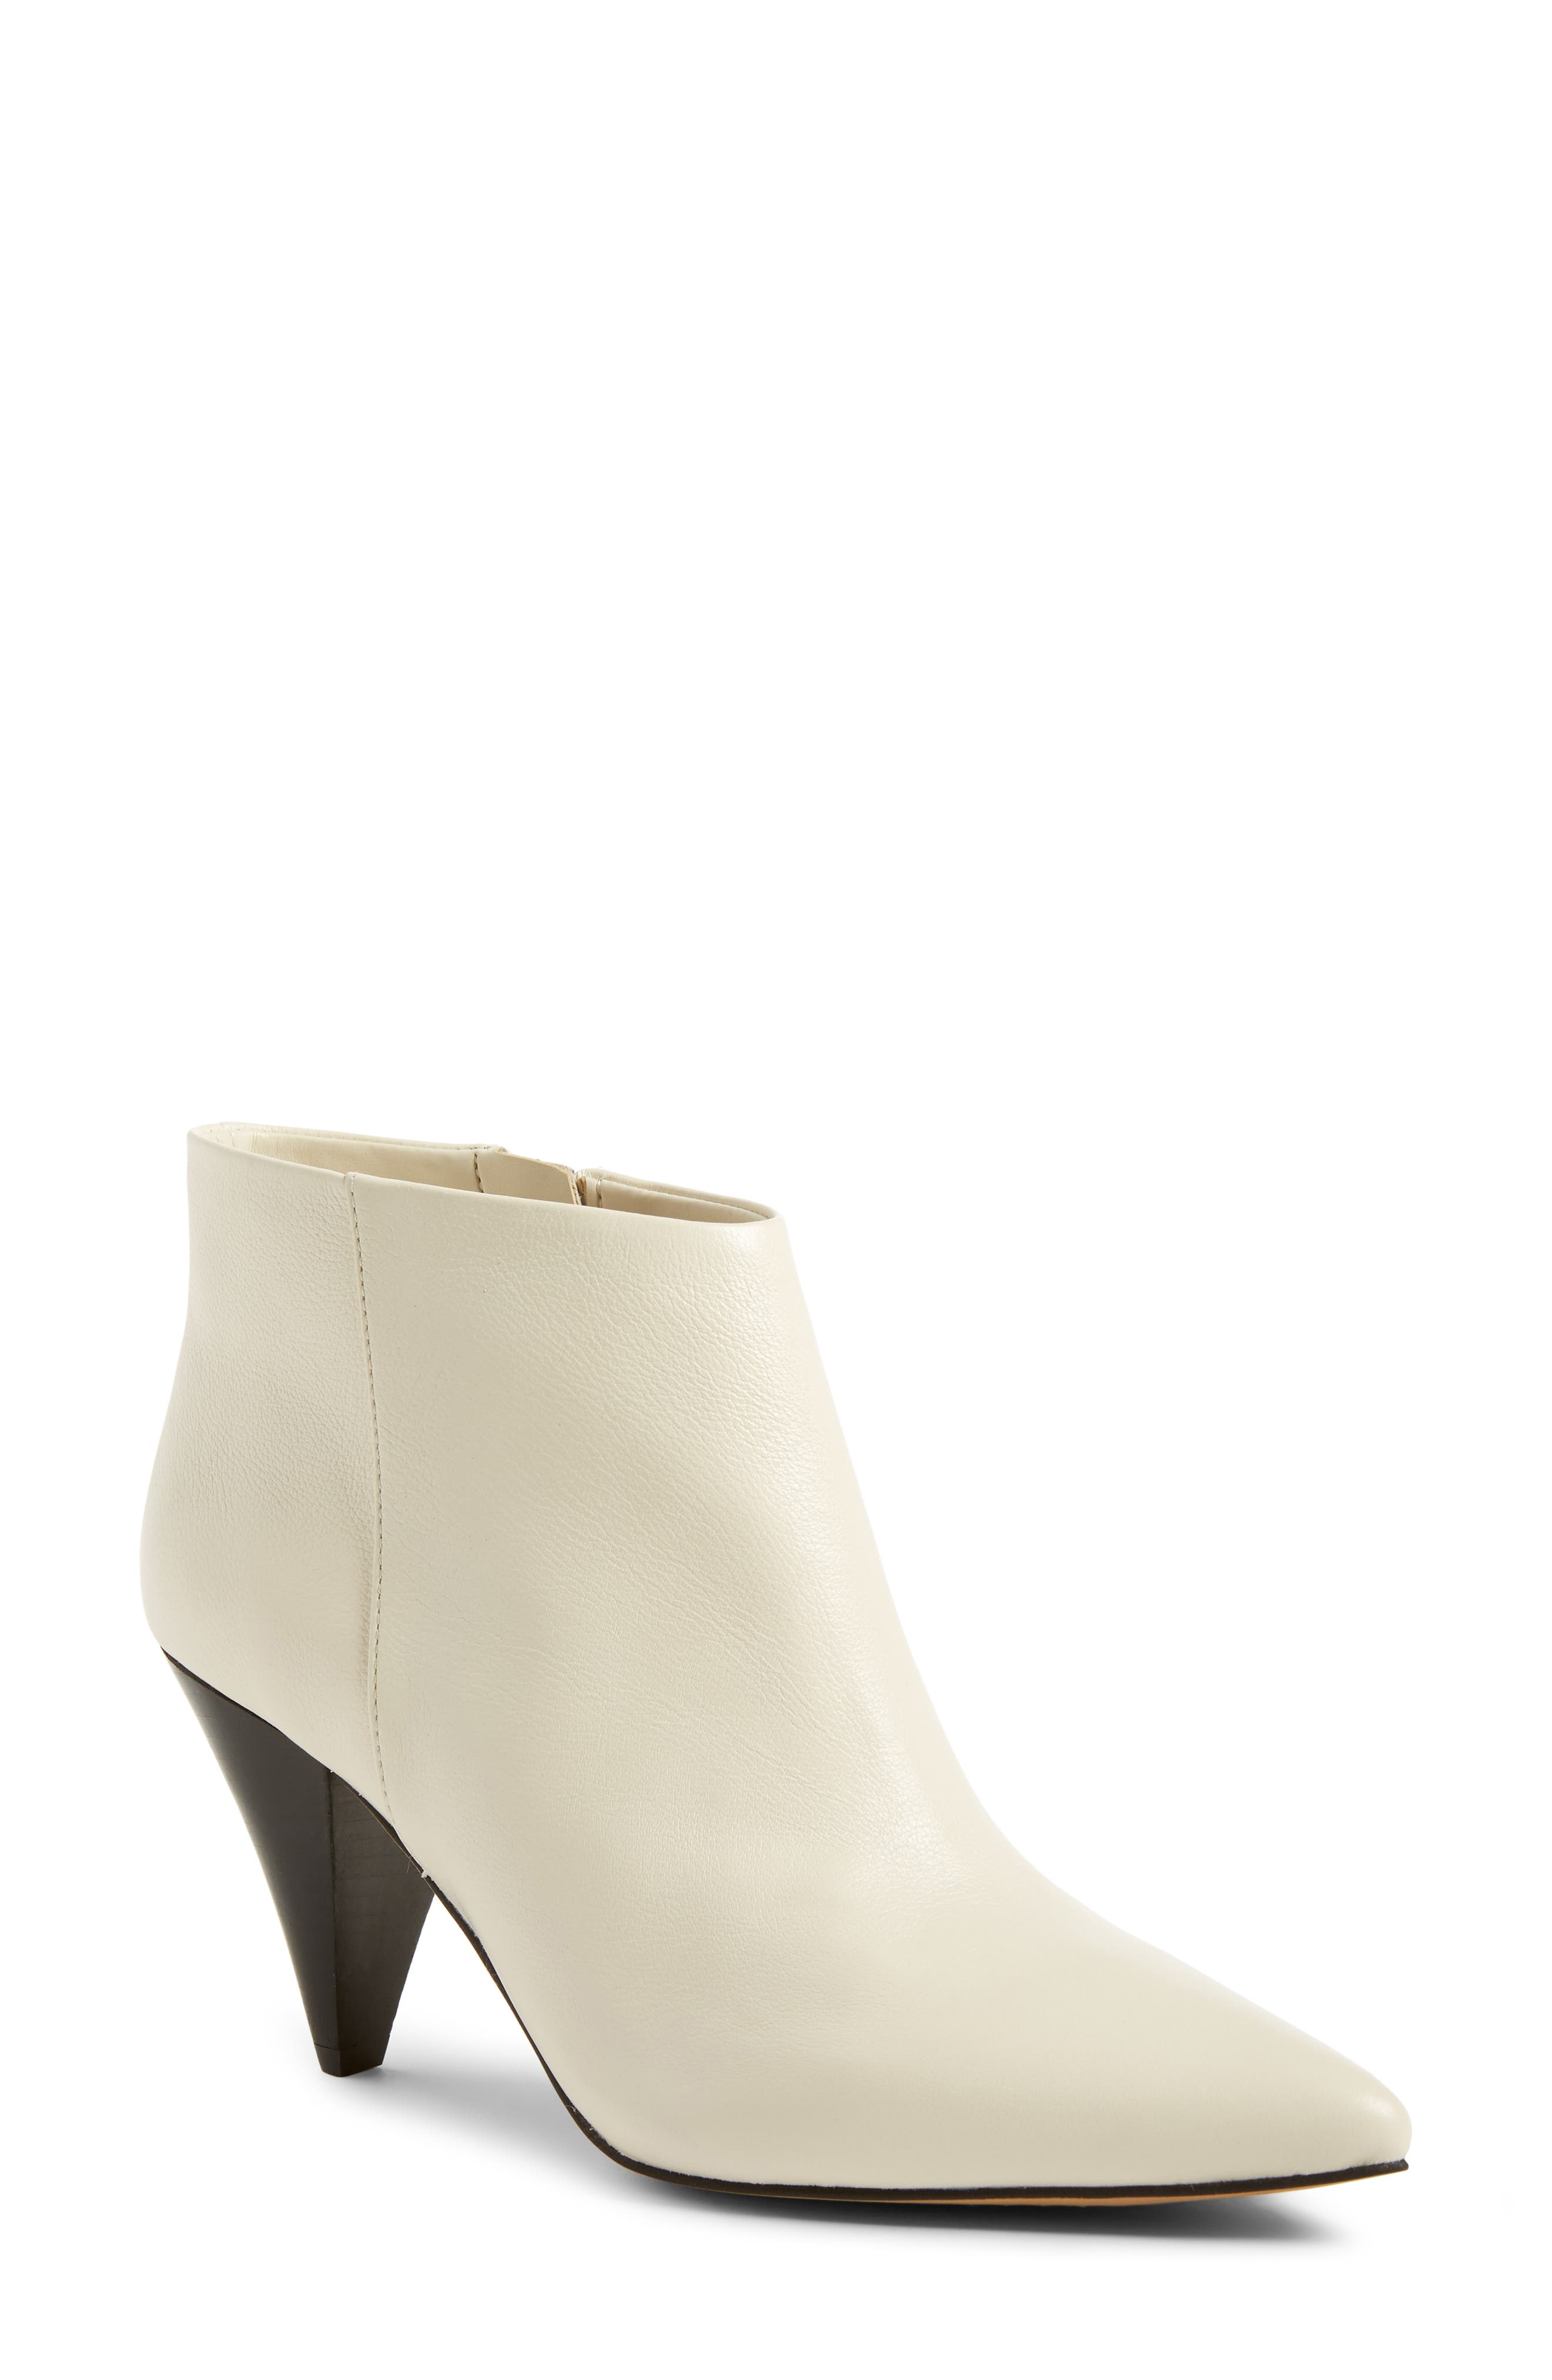 Vince Camuto Adriela Bootie, White